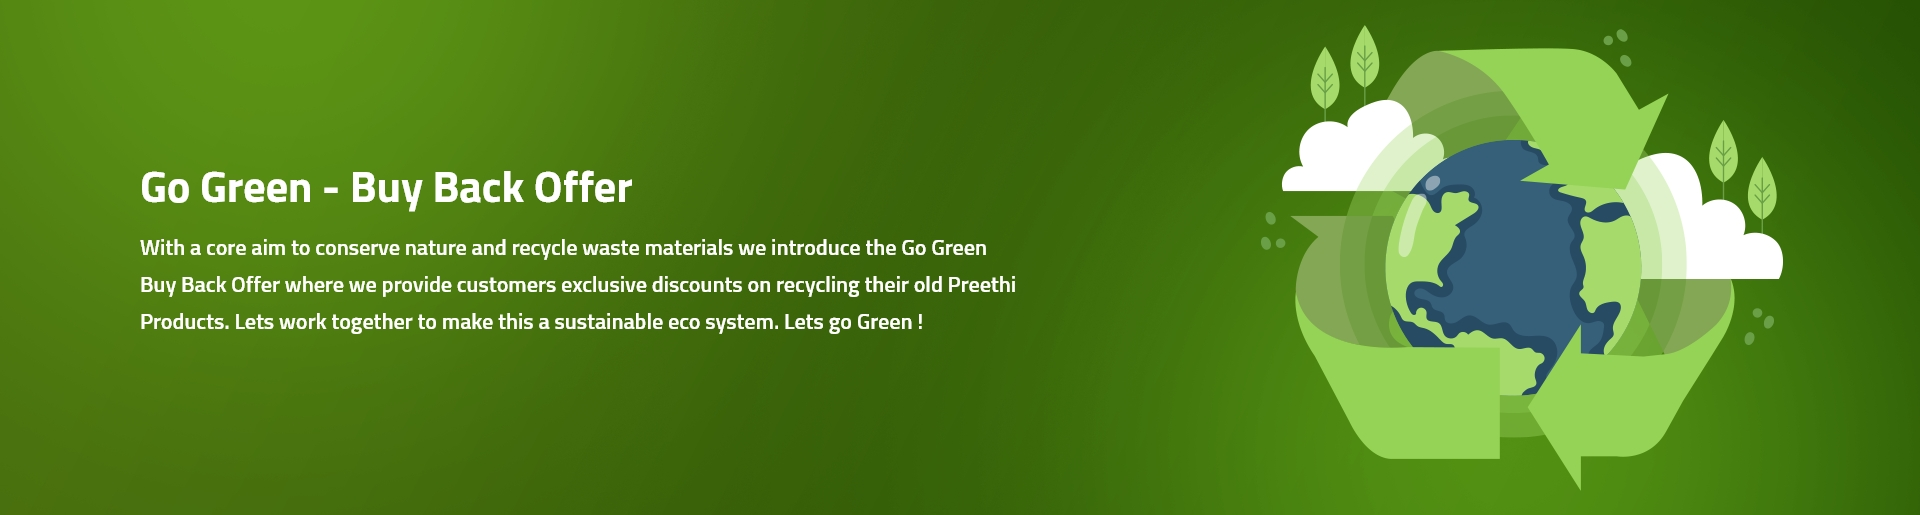 Go green-Recycle your kitchen appliances